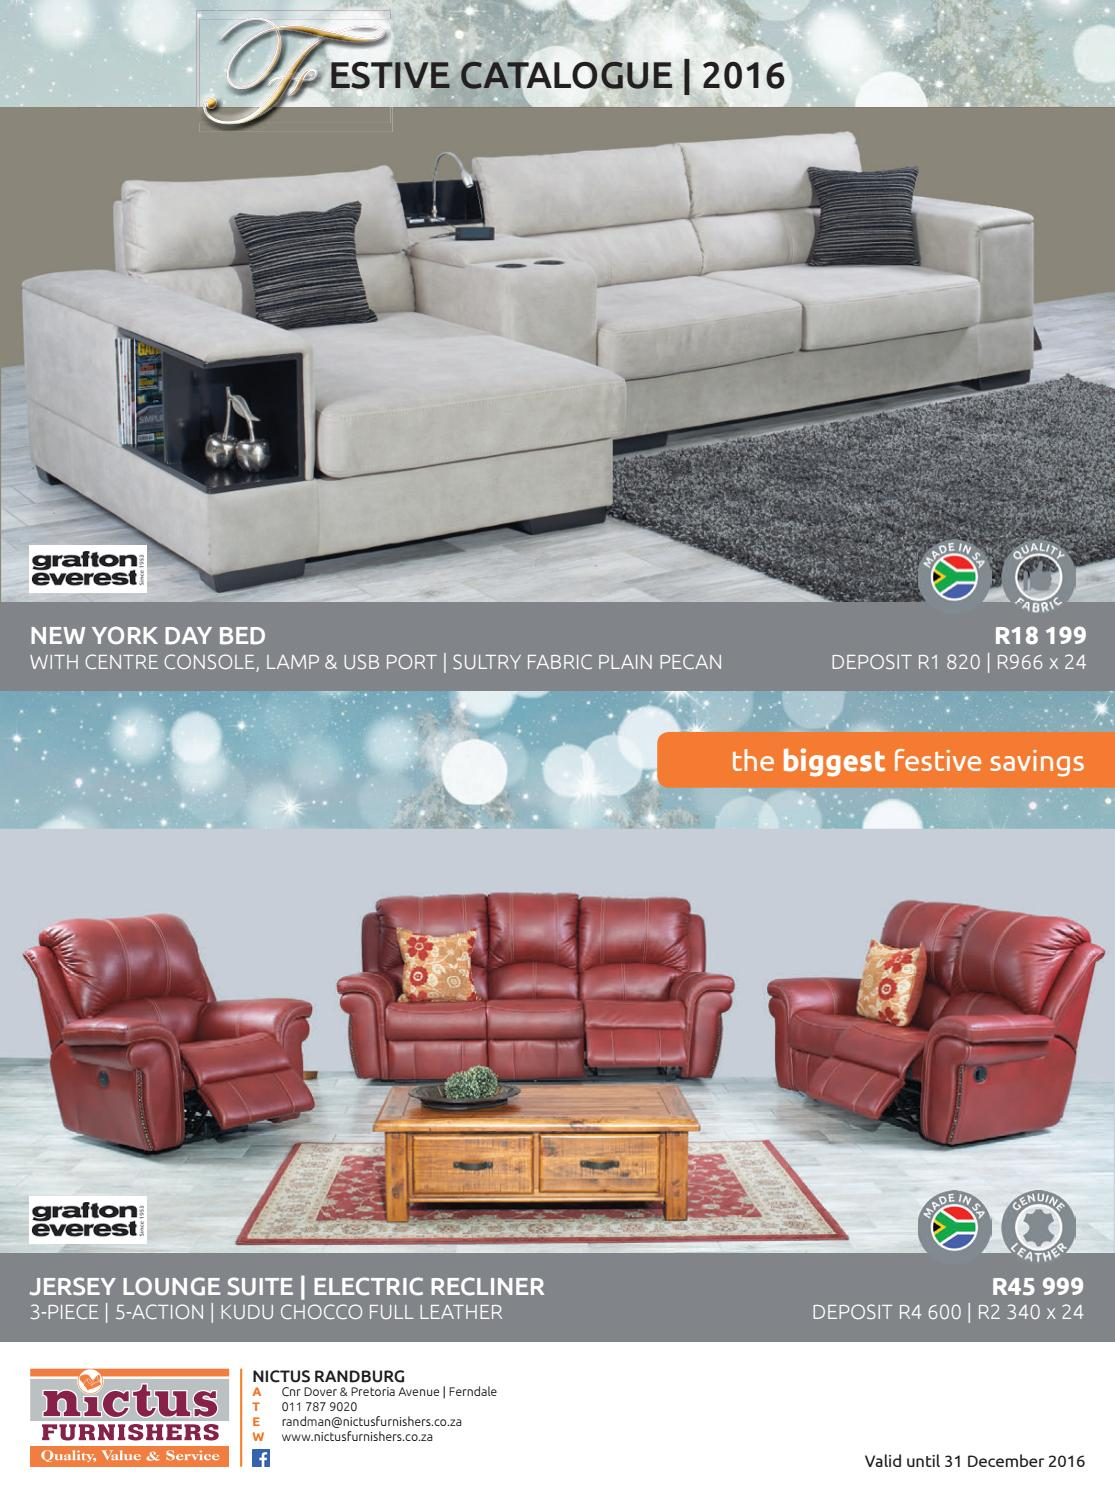 Nictus Gauteng Festive Catalogue 2016 By Nictus Furnishers